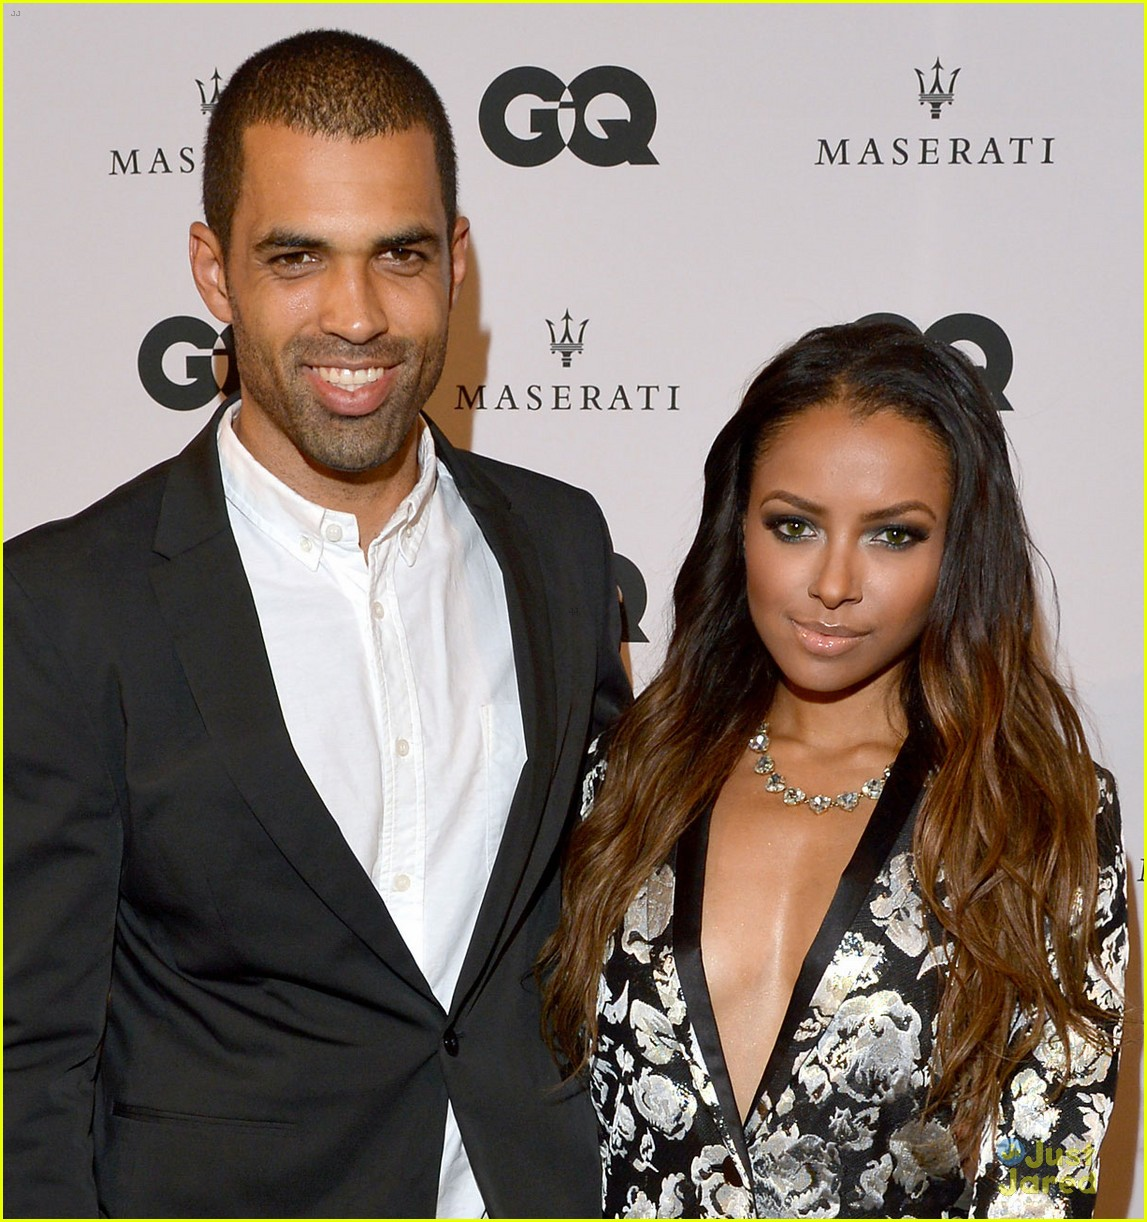 cottrell guidry and katerina grahamcottrell guidry wiki, cottrell guidry instagram, cottrell guidry bio, cottrell guidry net worth, cottrell guidry and kat graham, cottrell guidry ethnicity, cottrell guidry the vampire diaries, cottrell guidry birthday, cottrell guidry and katerina graham engaged, cottrell guidry twitter, cottrell guidry tattoo, cottrell guidry engaged, cottrell guidry race, cottrell guidry and katerina graham, cottrell guidry born, cottrell guidry dating, cottrell guidry 2015, cottrell guidry birth date, cottrell guidry tumblr, cottrell guidry images